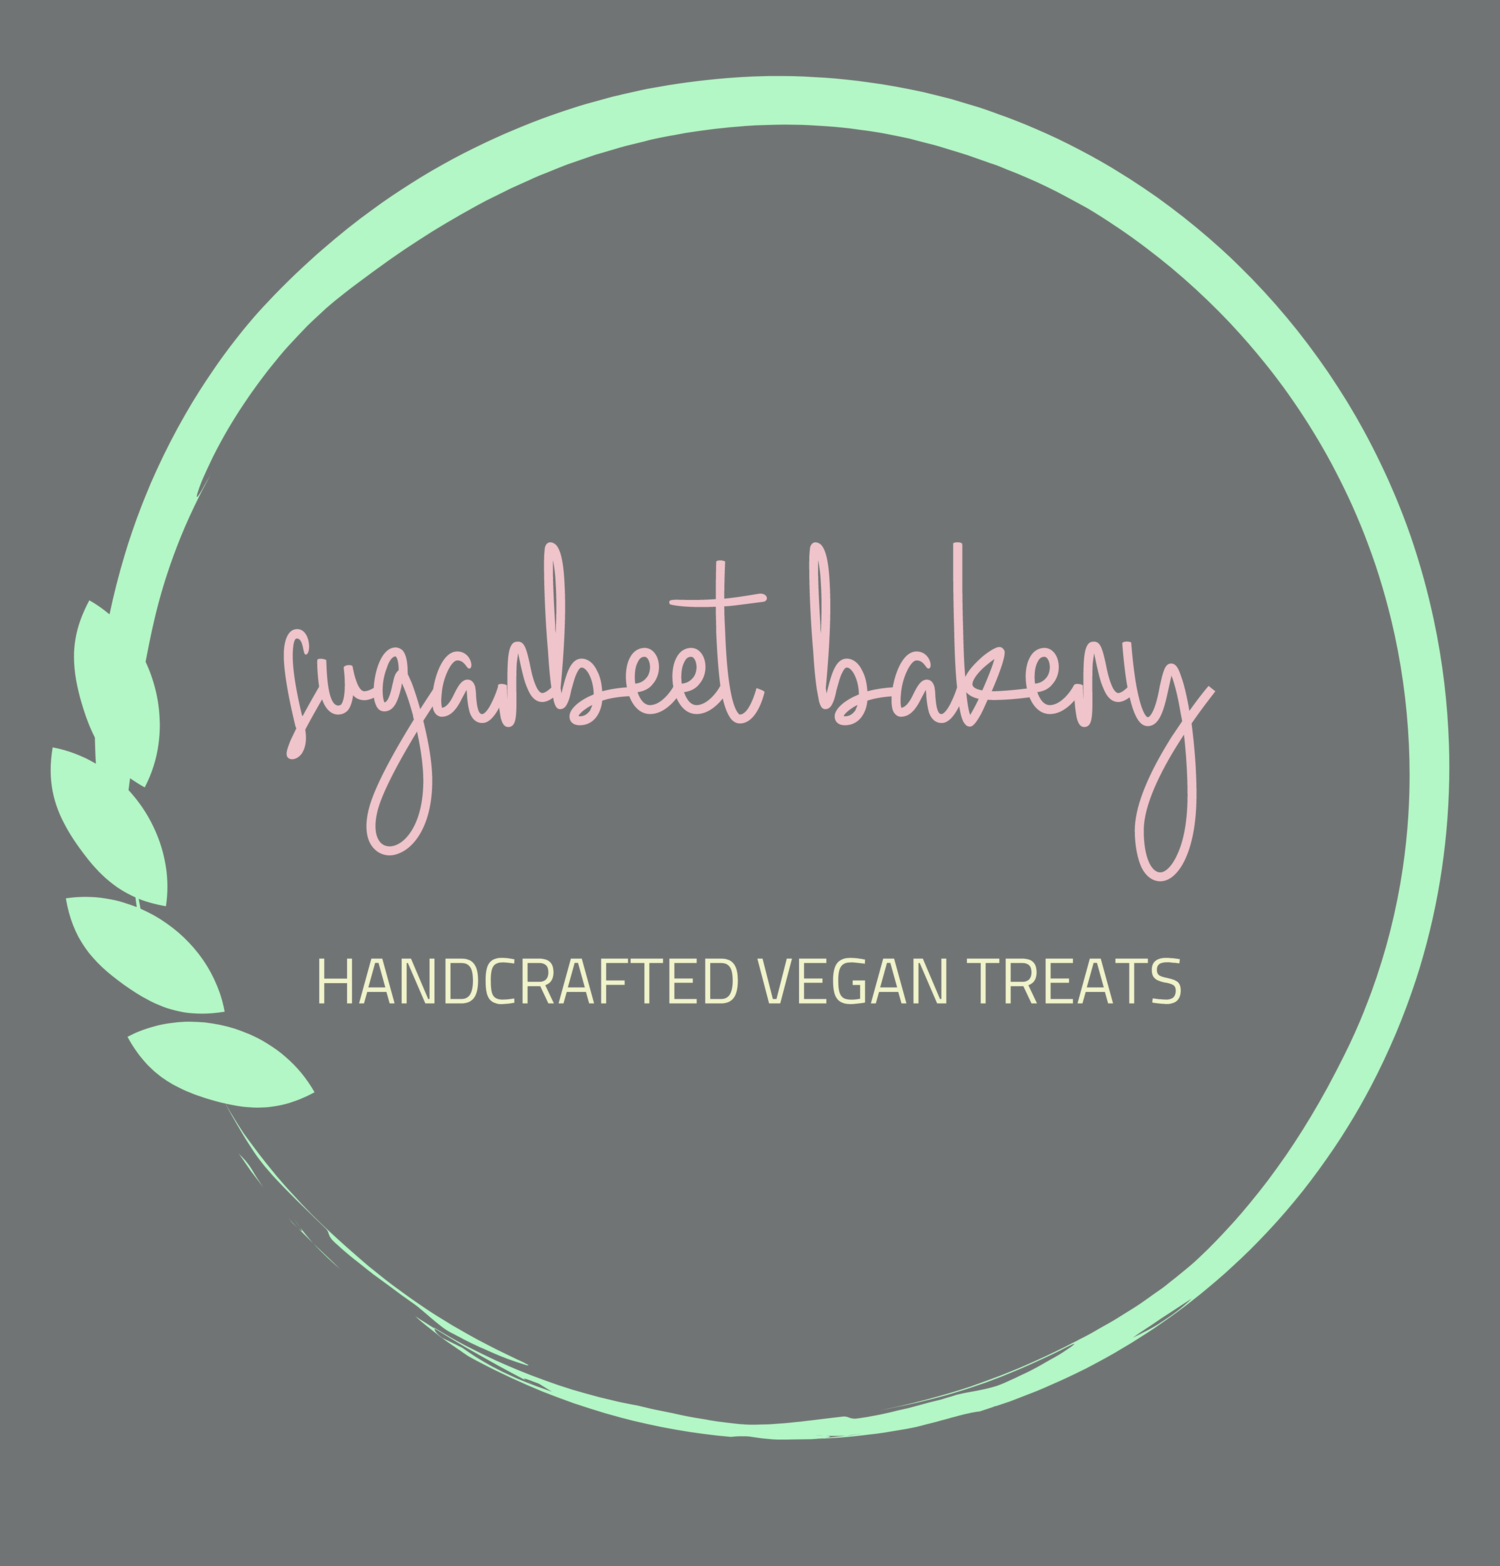 sugarbeet bakery